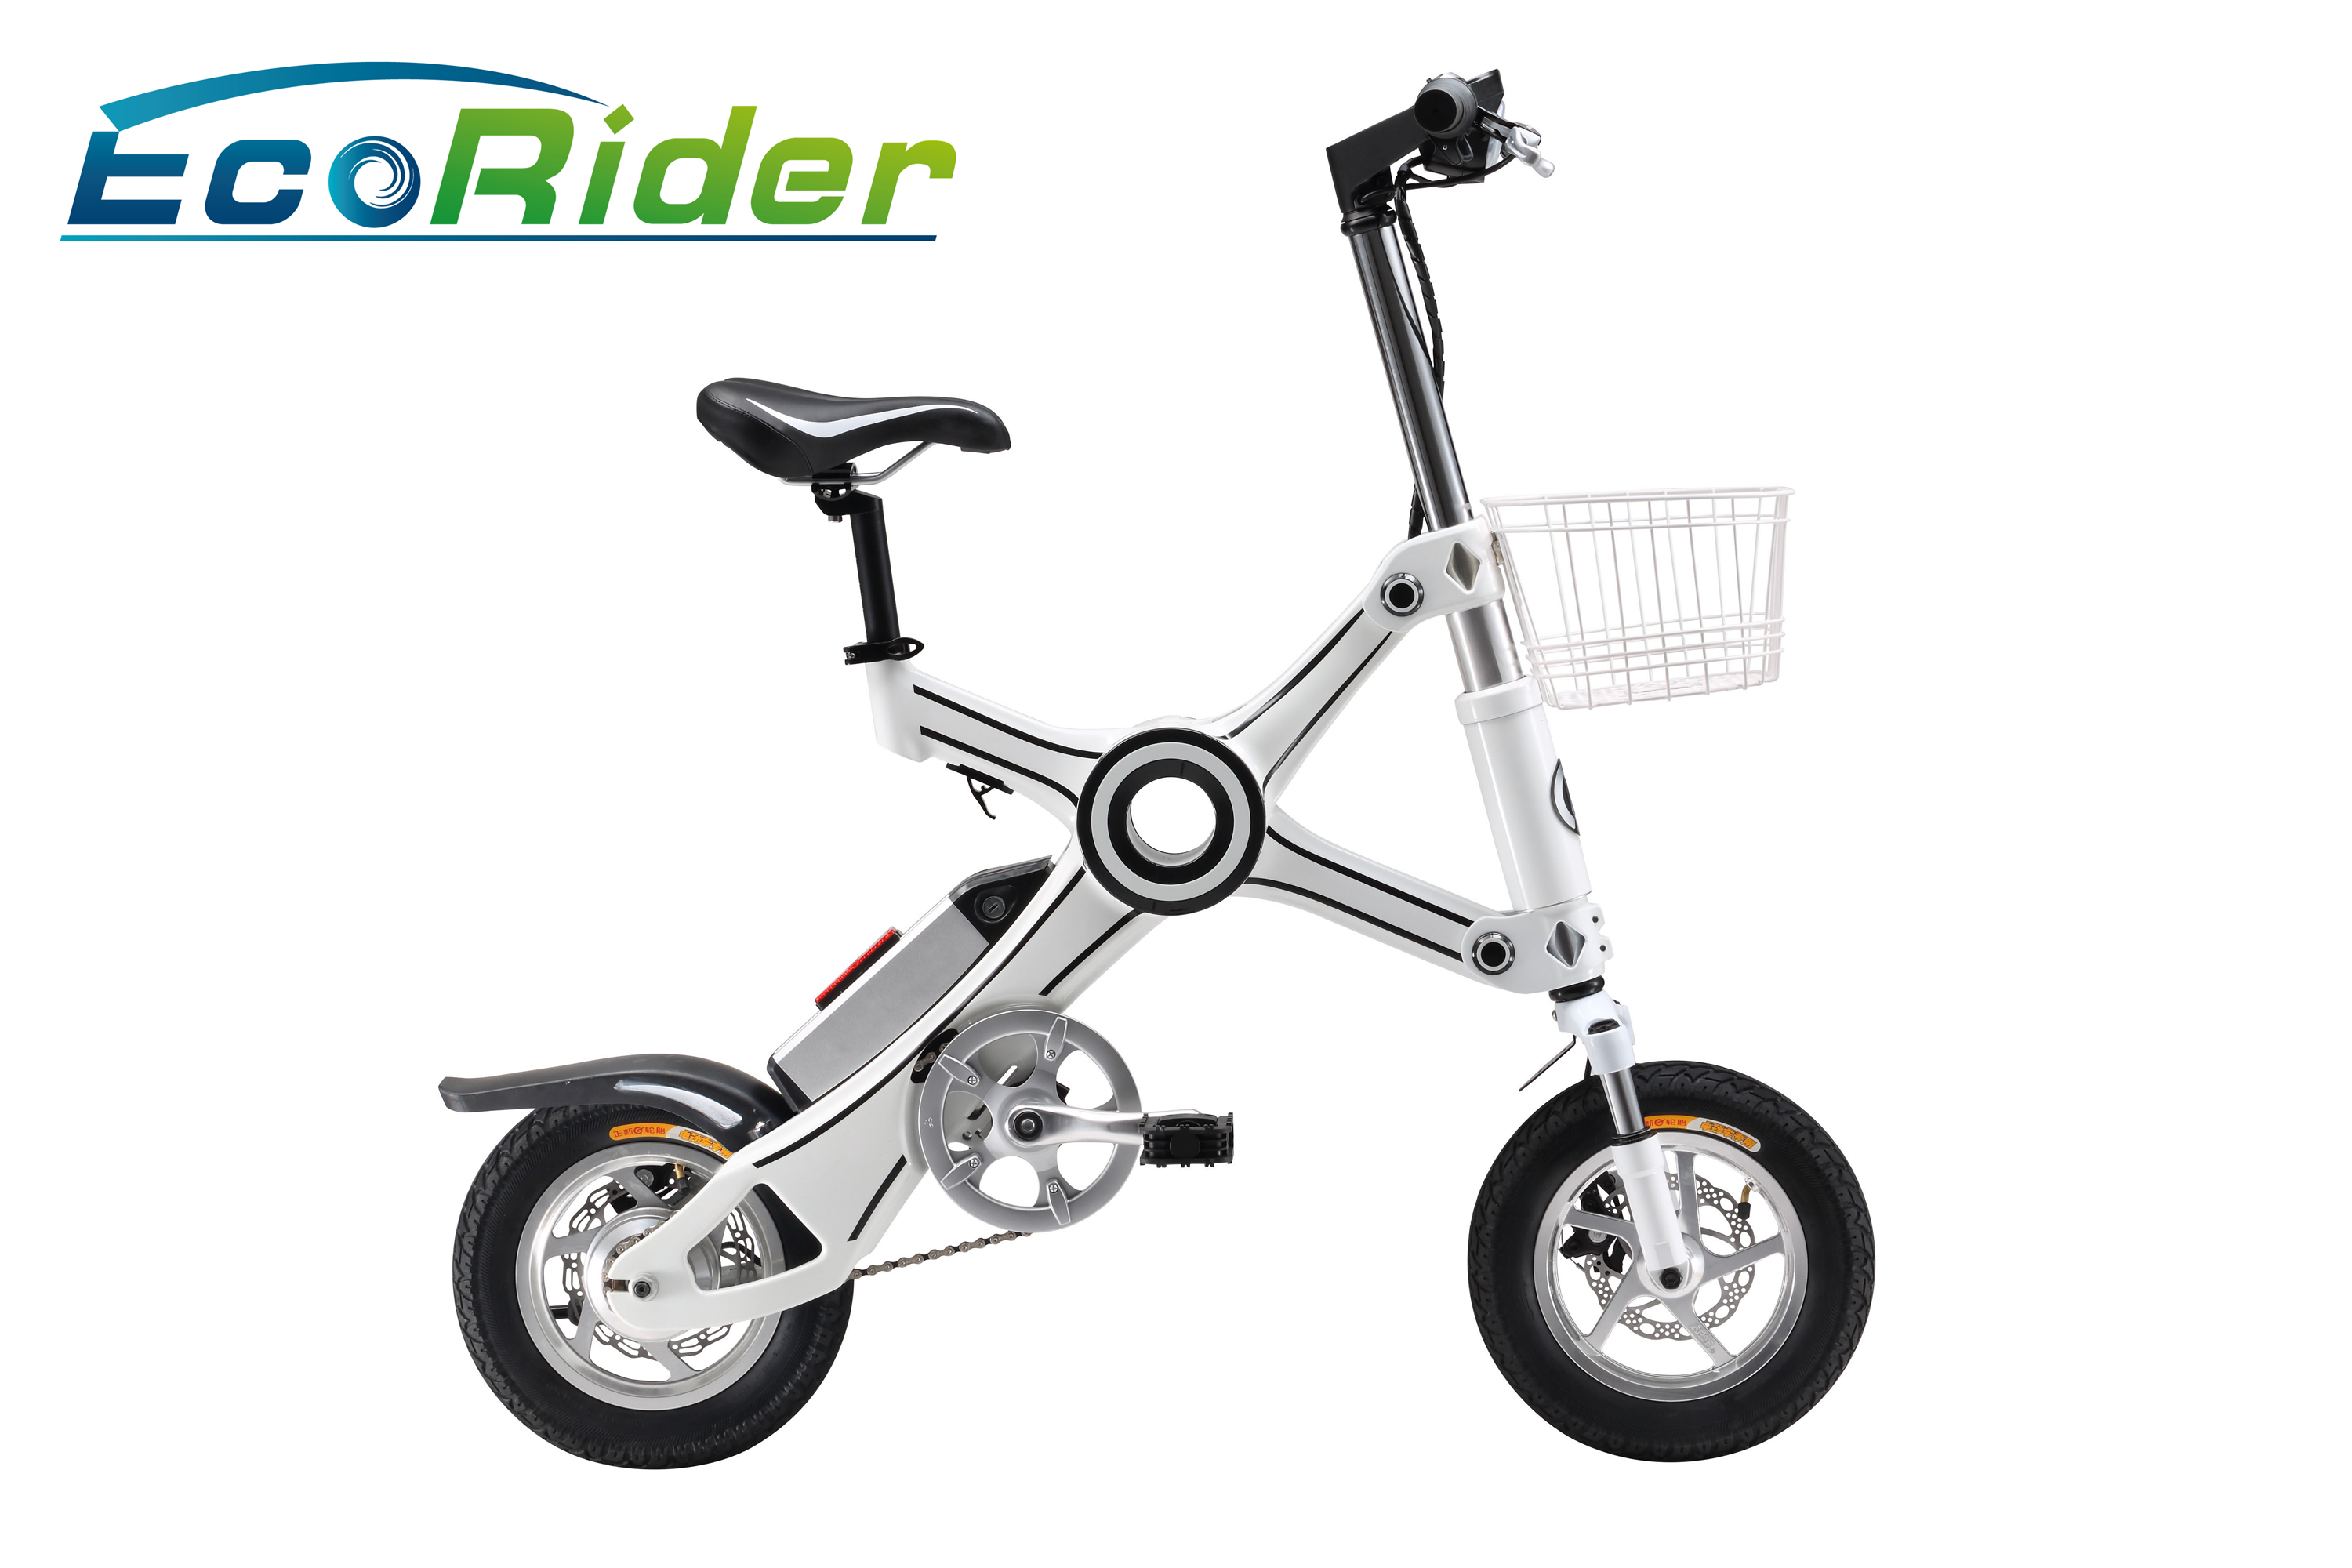 foldable electric bike brushless motor electric bicycle. Black Bedroom Furniture Sets. Home Design Ideas